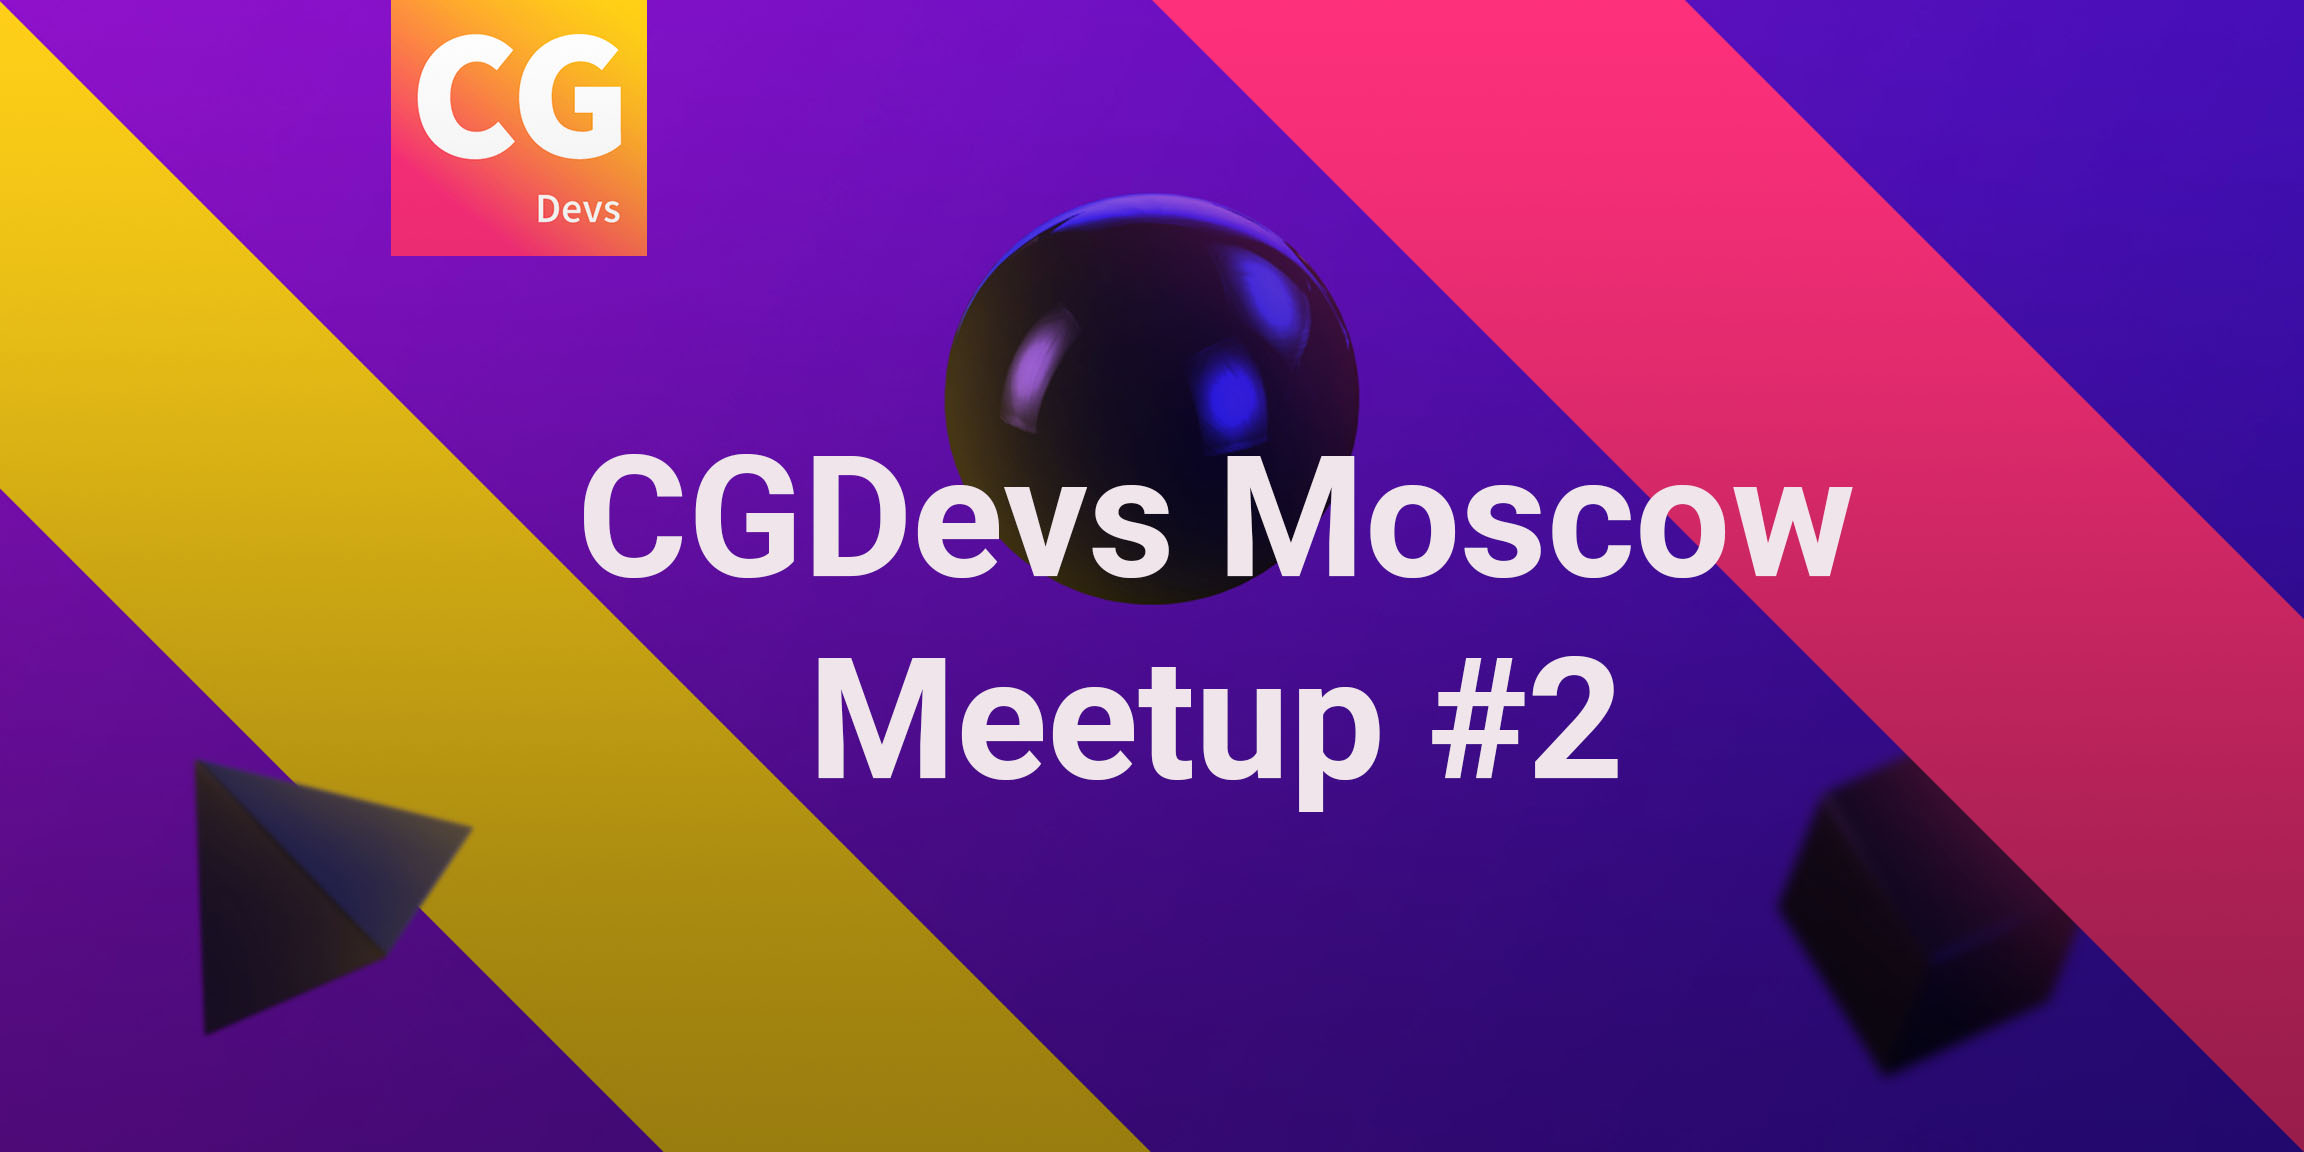 CGDevs Moscow Meetup #2 - 1